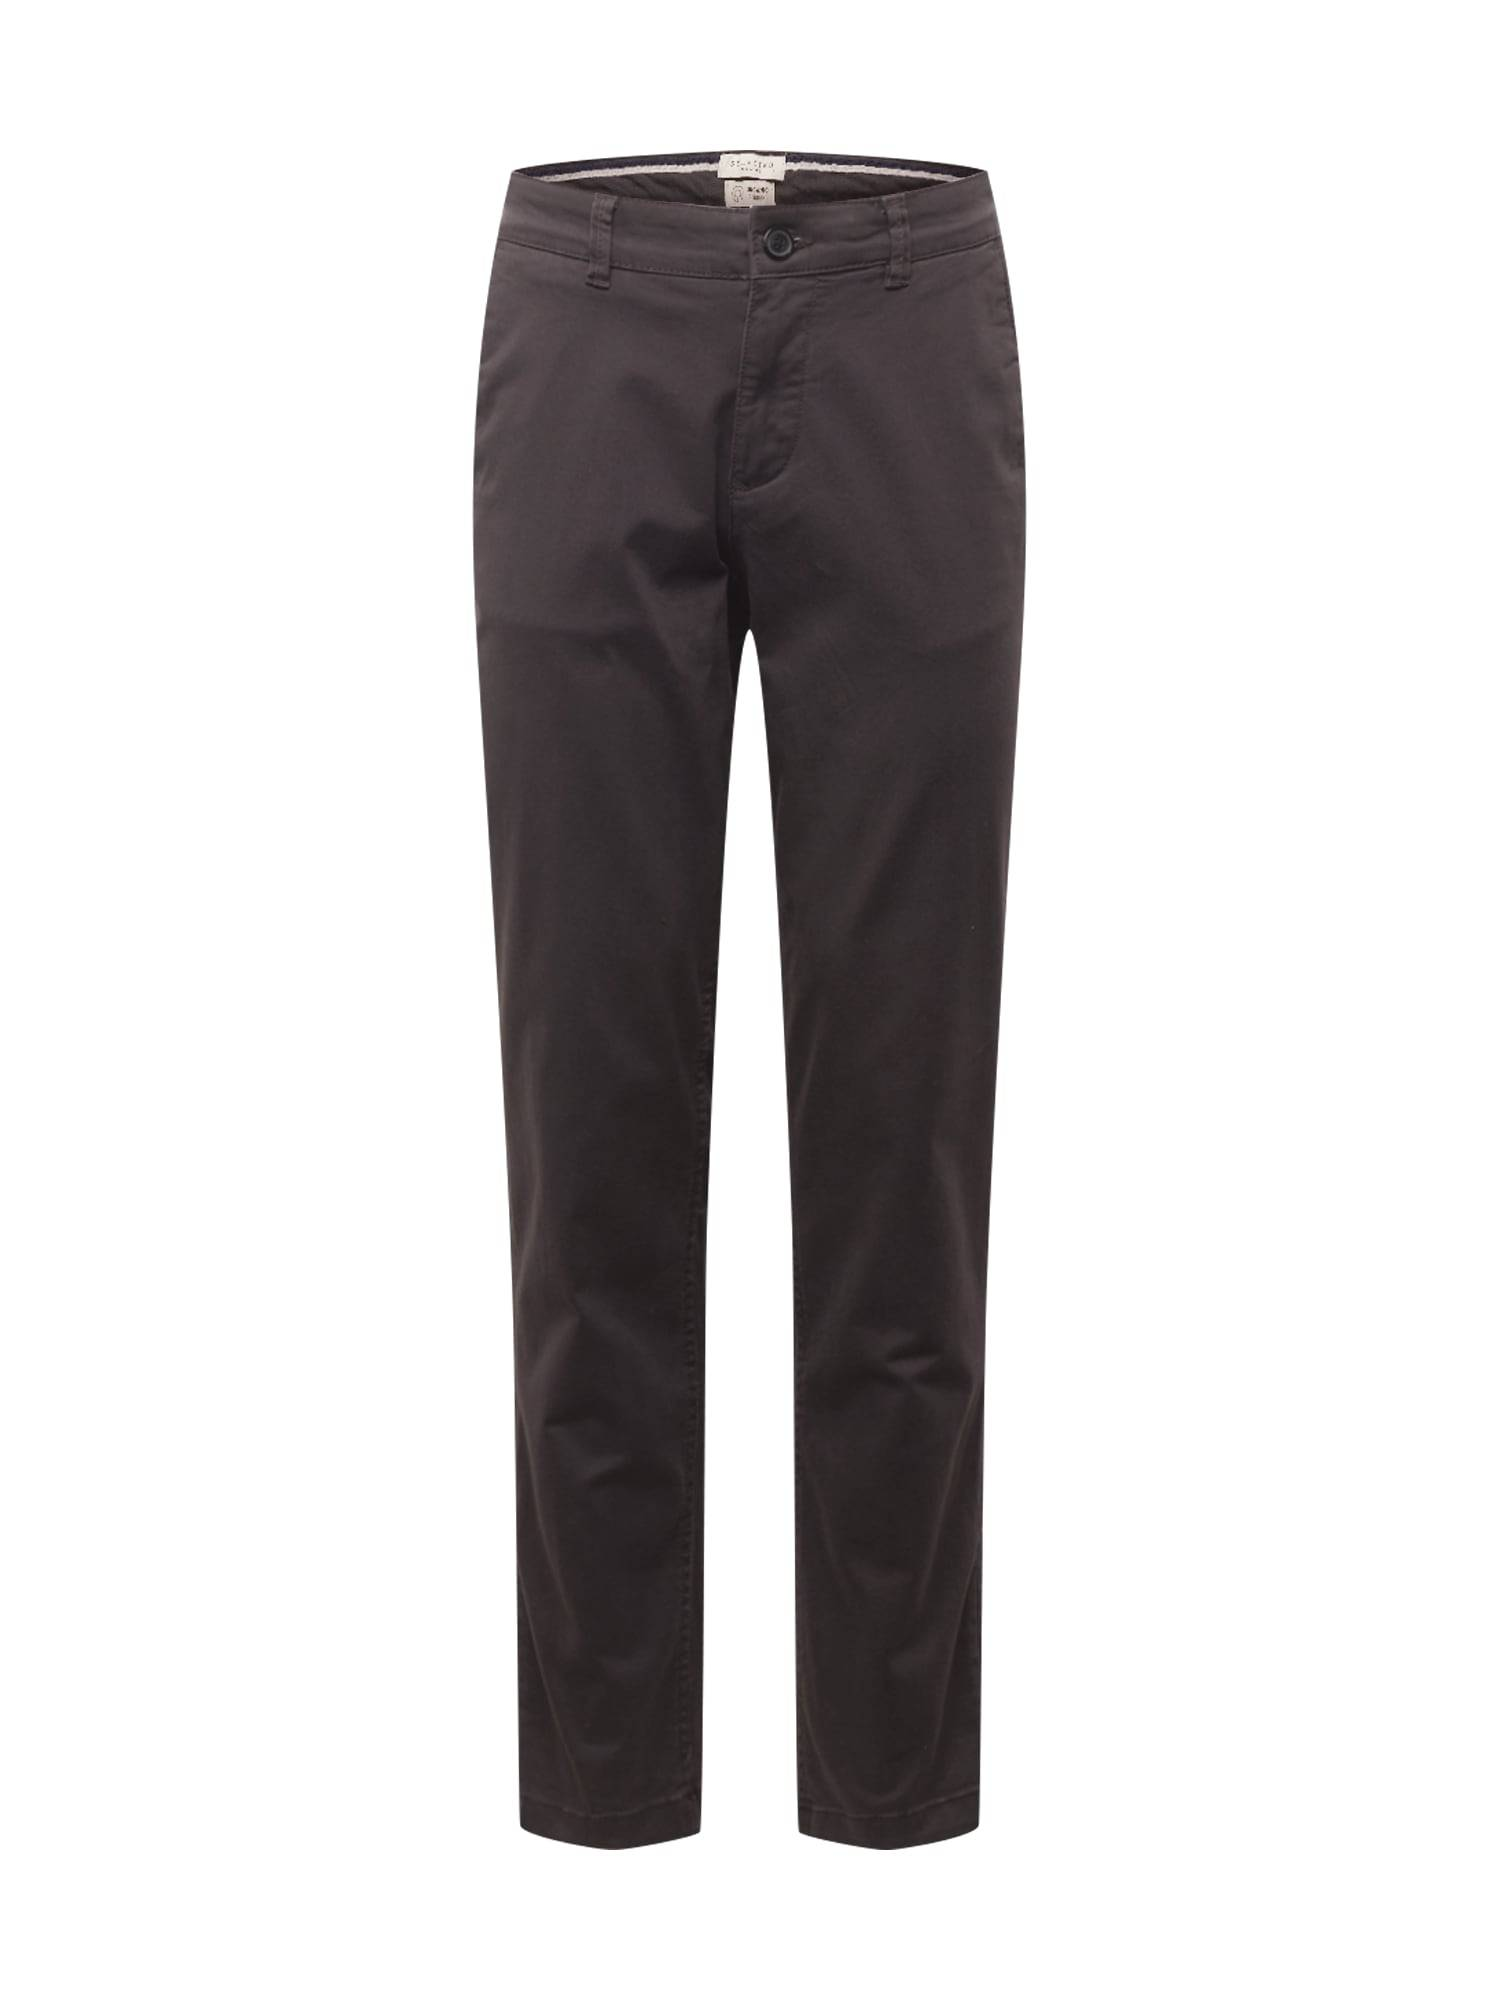 SELECTED HOMME Pantalon chino 'NEW PARIS'  - Gris - Taille: 34 - male